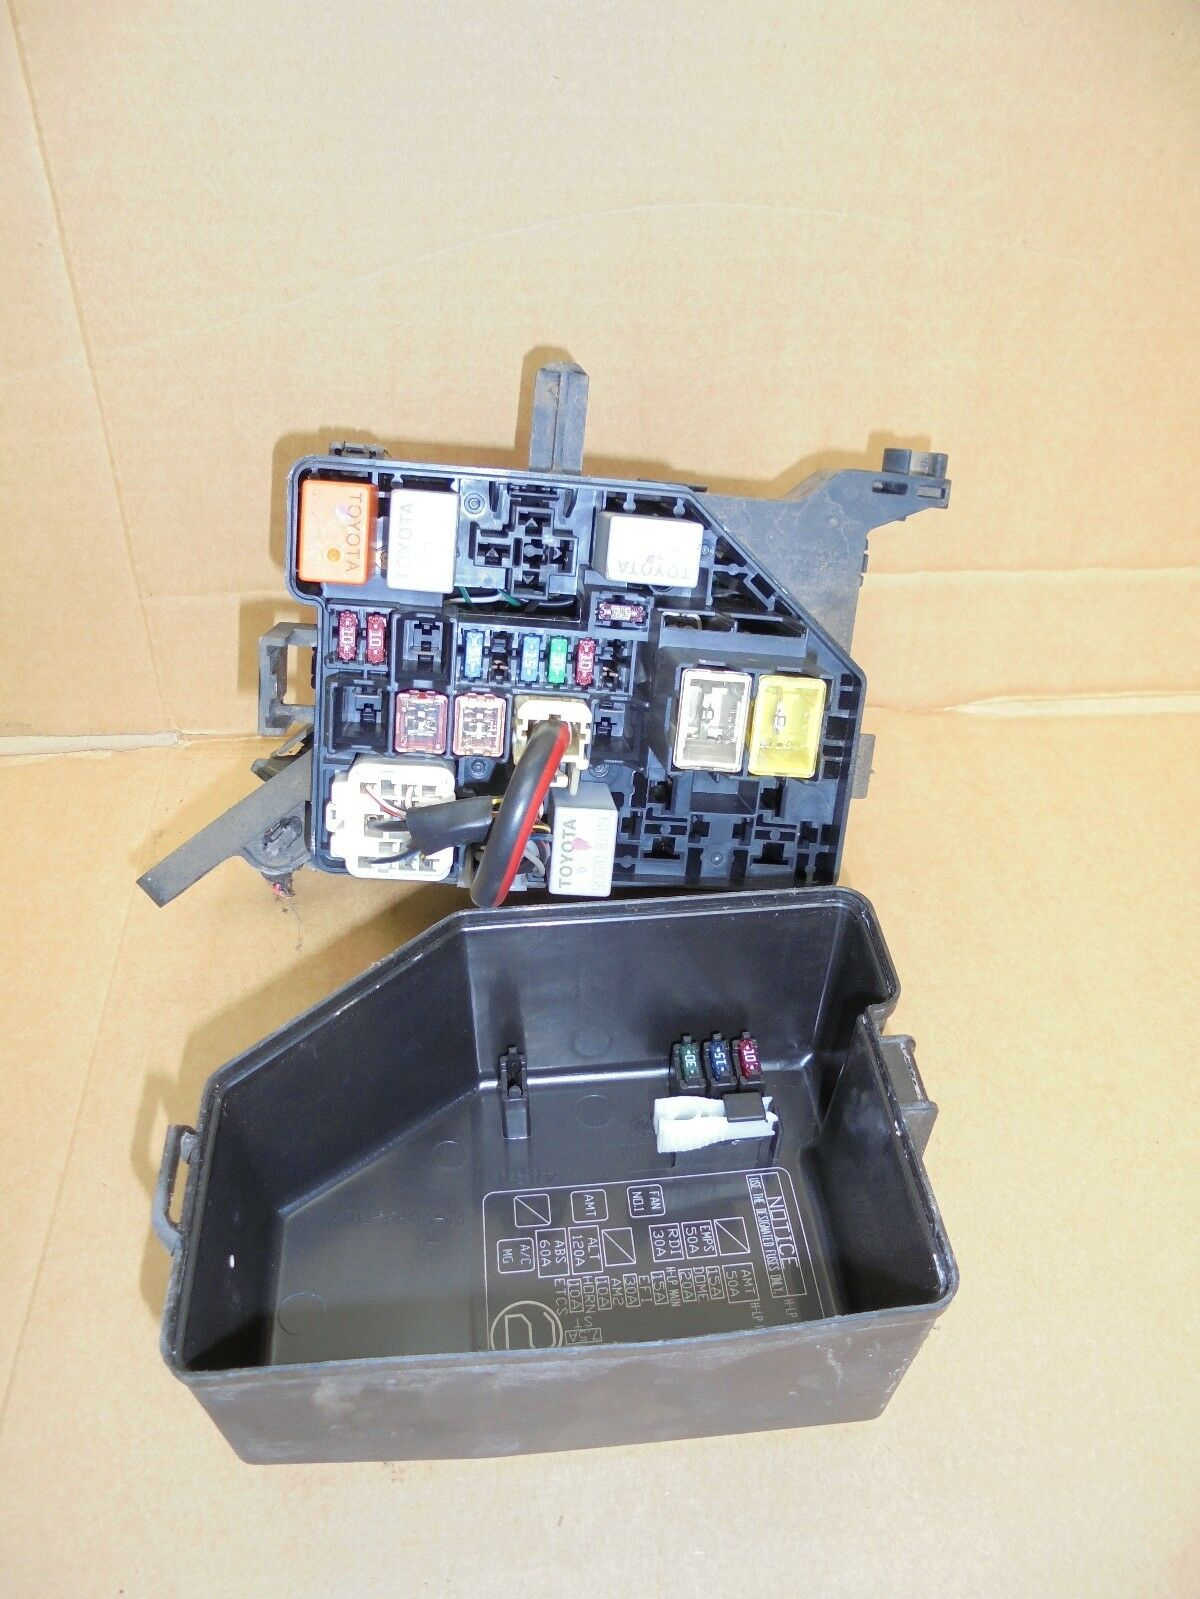 Toyota Yaris 2004 10 Vvti External Engine Bay Fuse Box 2950 1 Of 1only Available